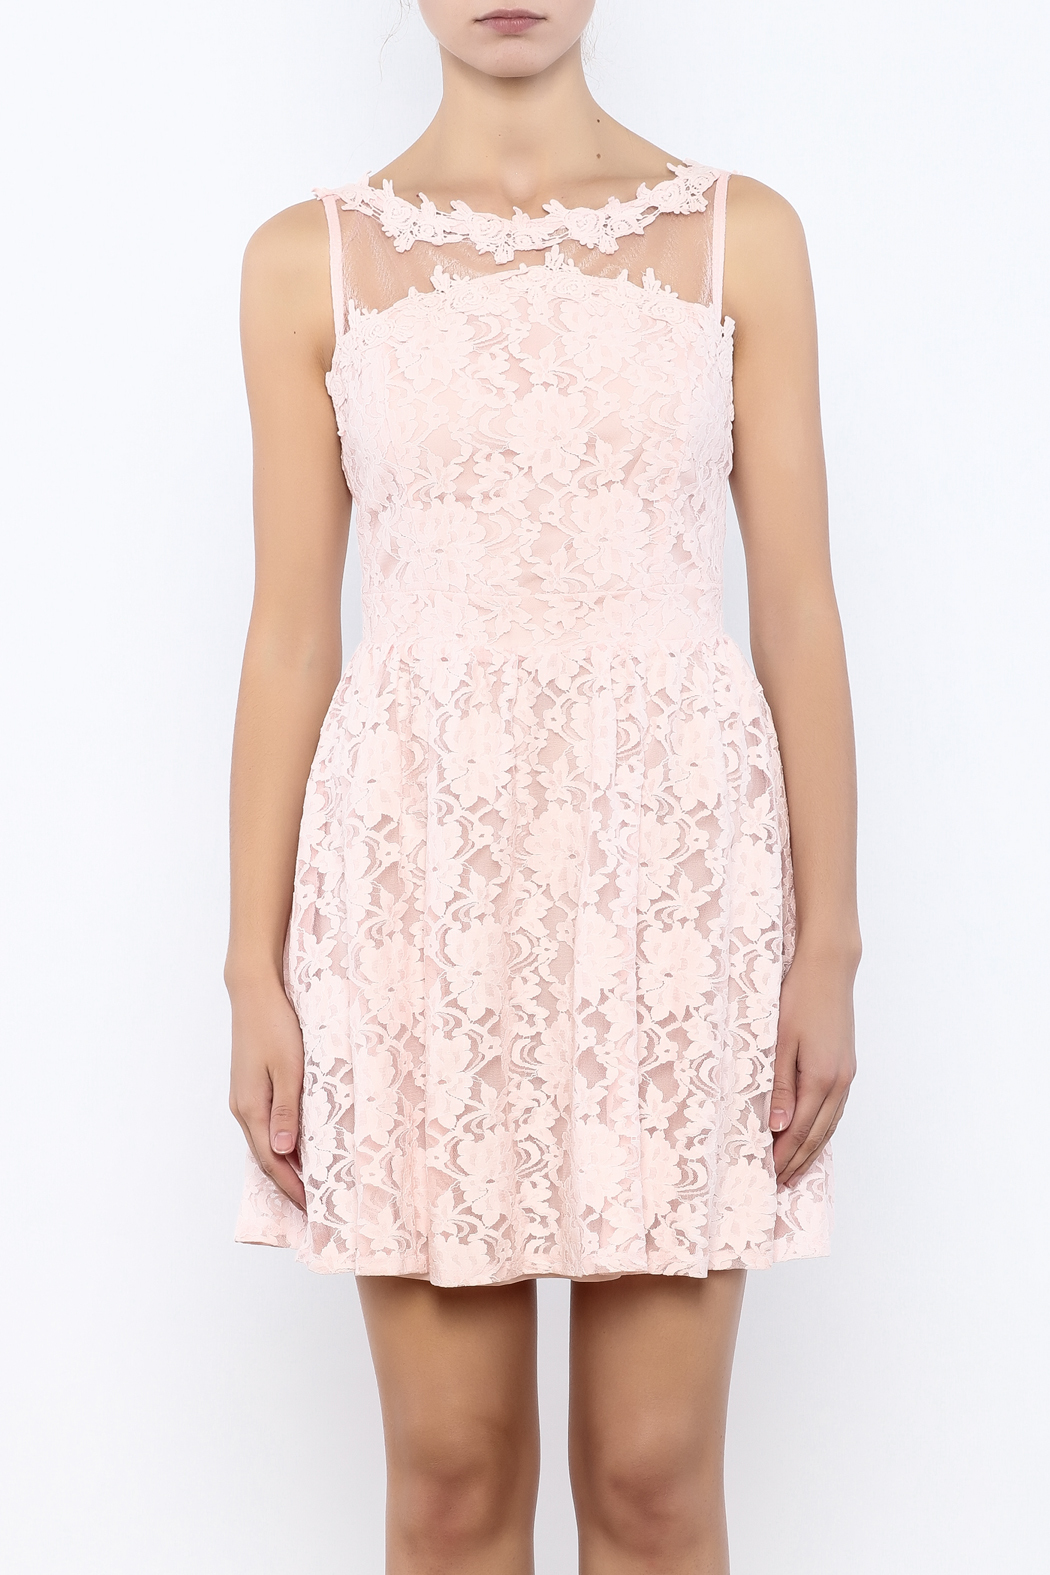 Nikibiki Lace Floral Dress - Side Cropped Image